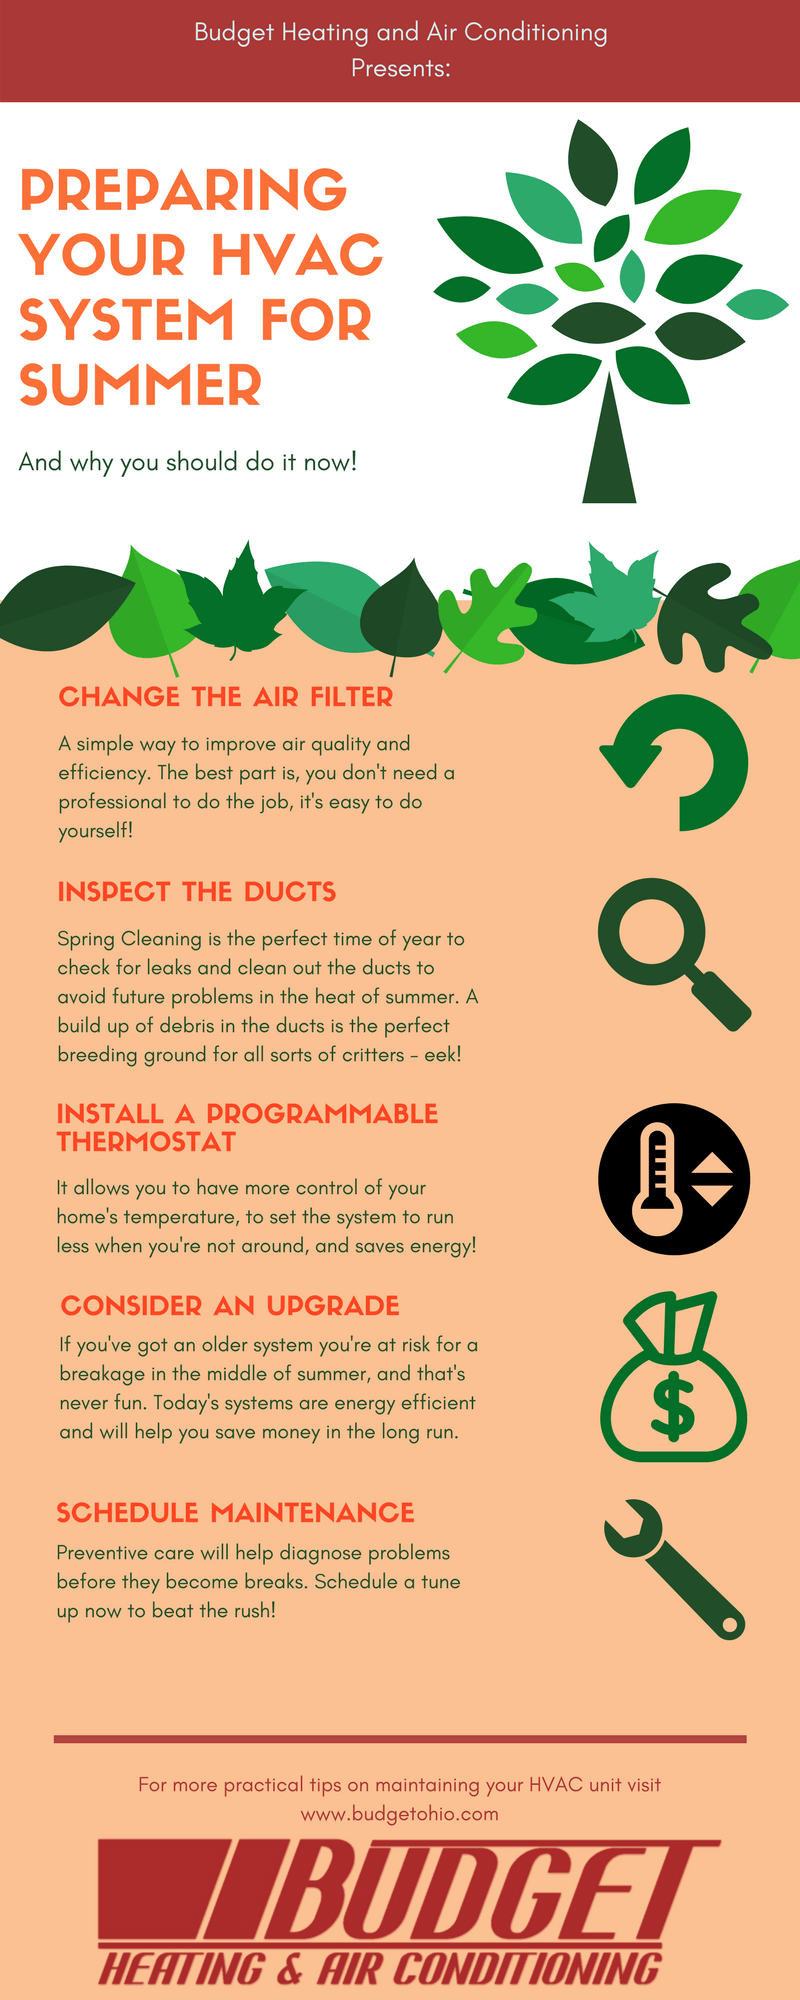 Tips for preparing your HVAC system for summer.